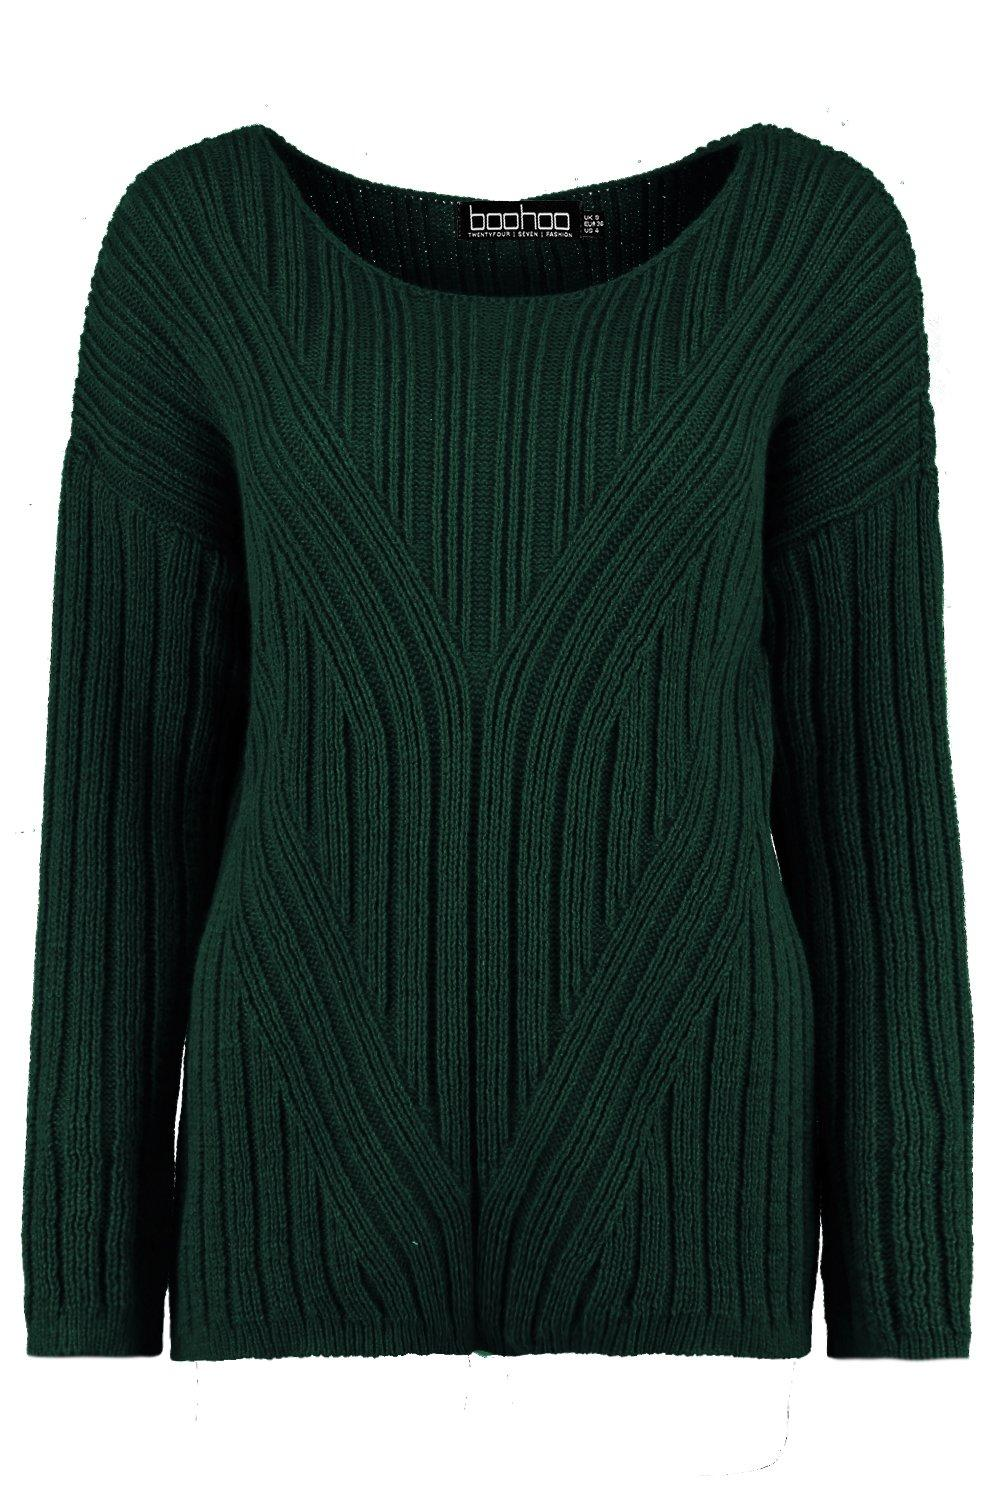 http://www.boohoo.com/isabella-rib-detail-oversized-jumper/DZZ41211.html?color=undefined